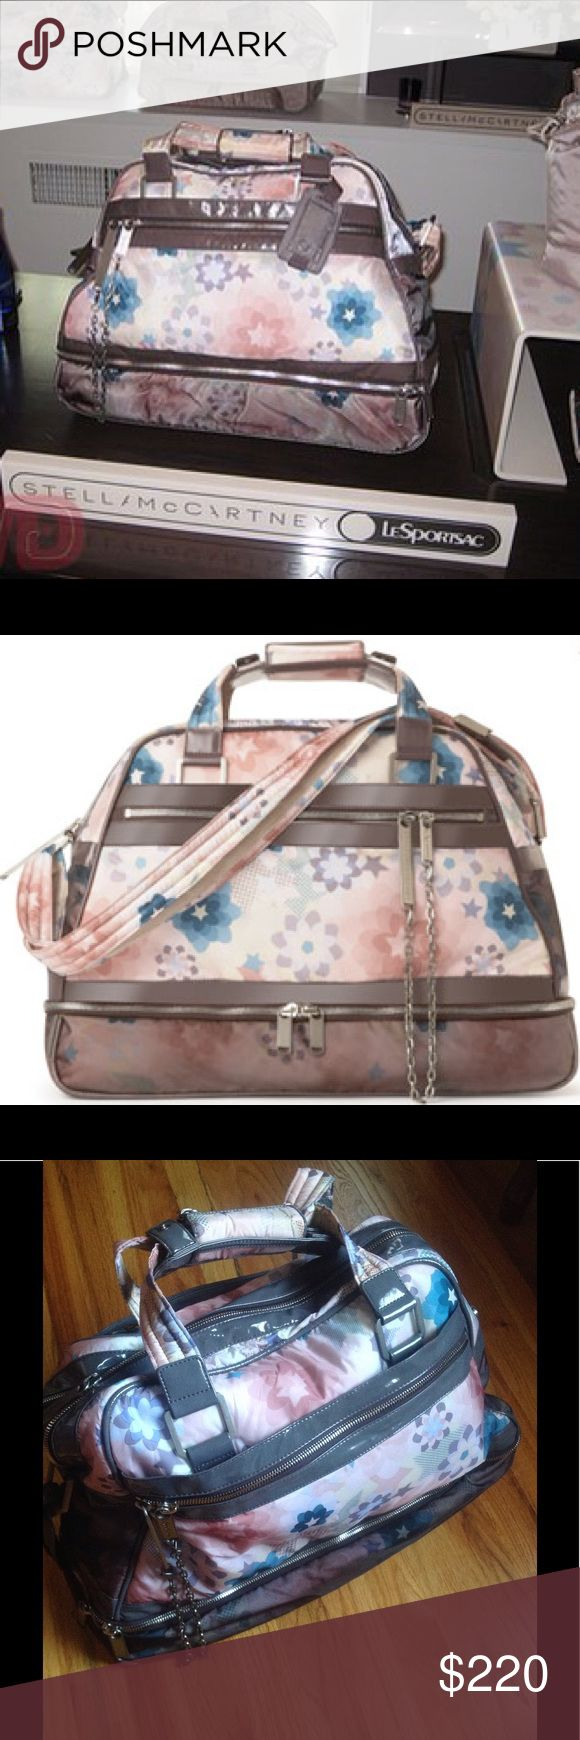 """STELLA MC CARTNEY  Collaboration with Le Sportsac NEW NO Tag attached., The large bow lining bag , the soft modern florals., the pink the abstract print it looks chic and fresh perfect for design lovers !. Missing cosmetic pouch see last picture.,  just to big for me  19 1/2""""L X 15""""H X 6 1/2""""W 🚫NO TRADES🚫REASONABLE OFFERS WELCOME 🚫NO LOWBALLING Stella McCartney Bags Travel Bags"""